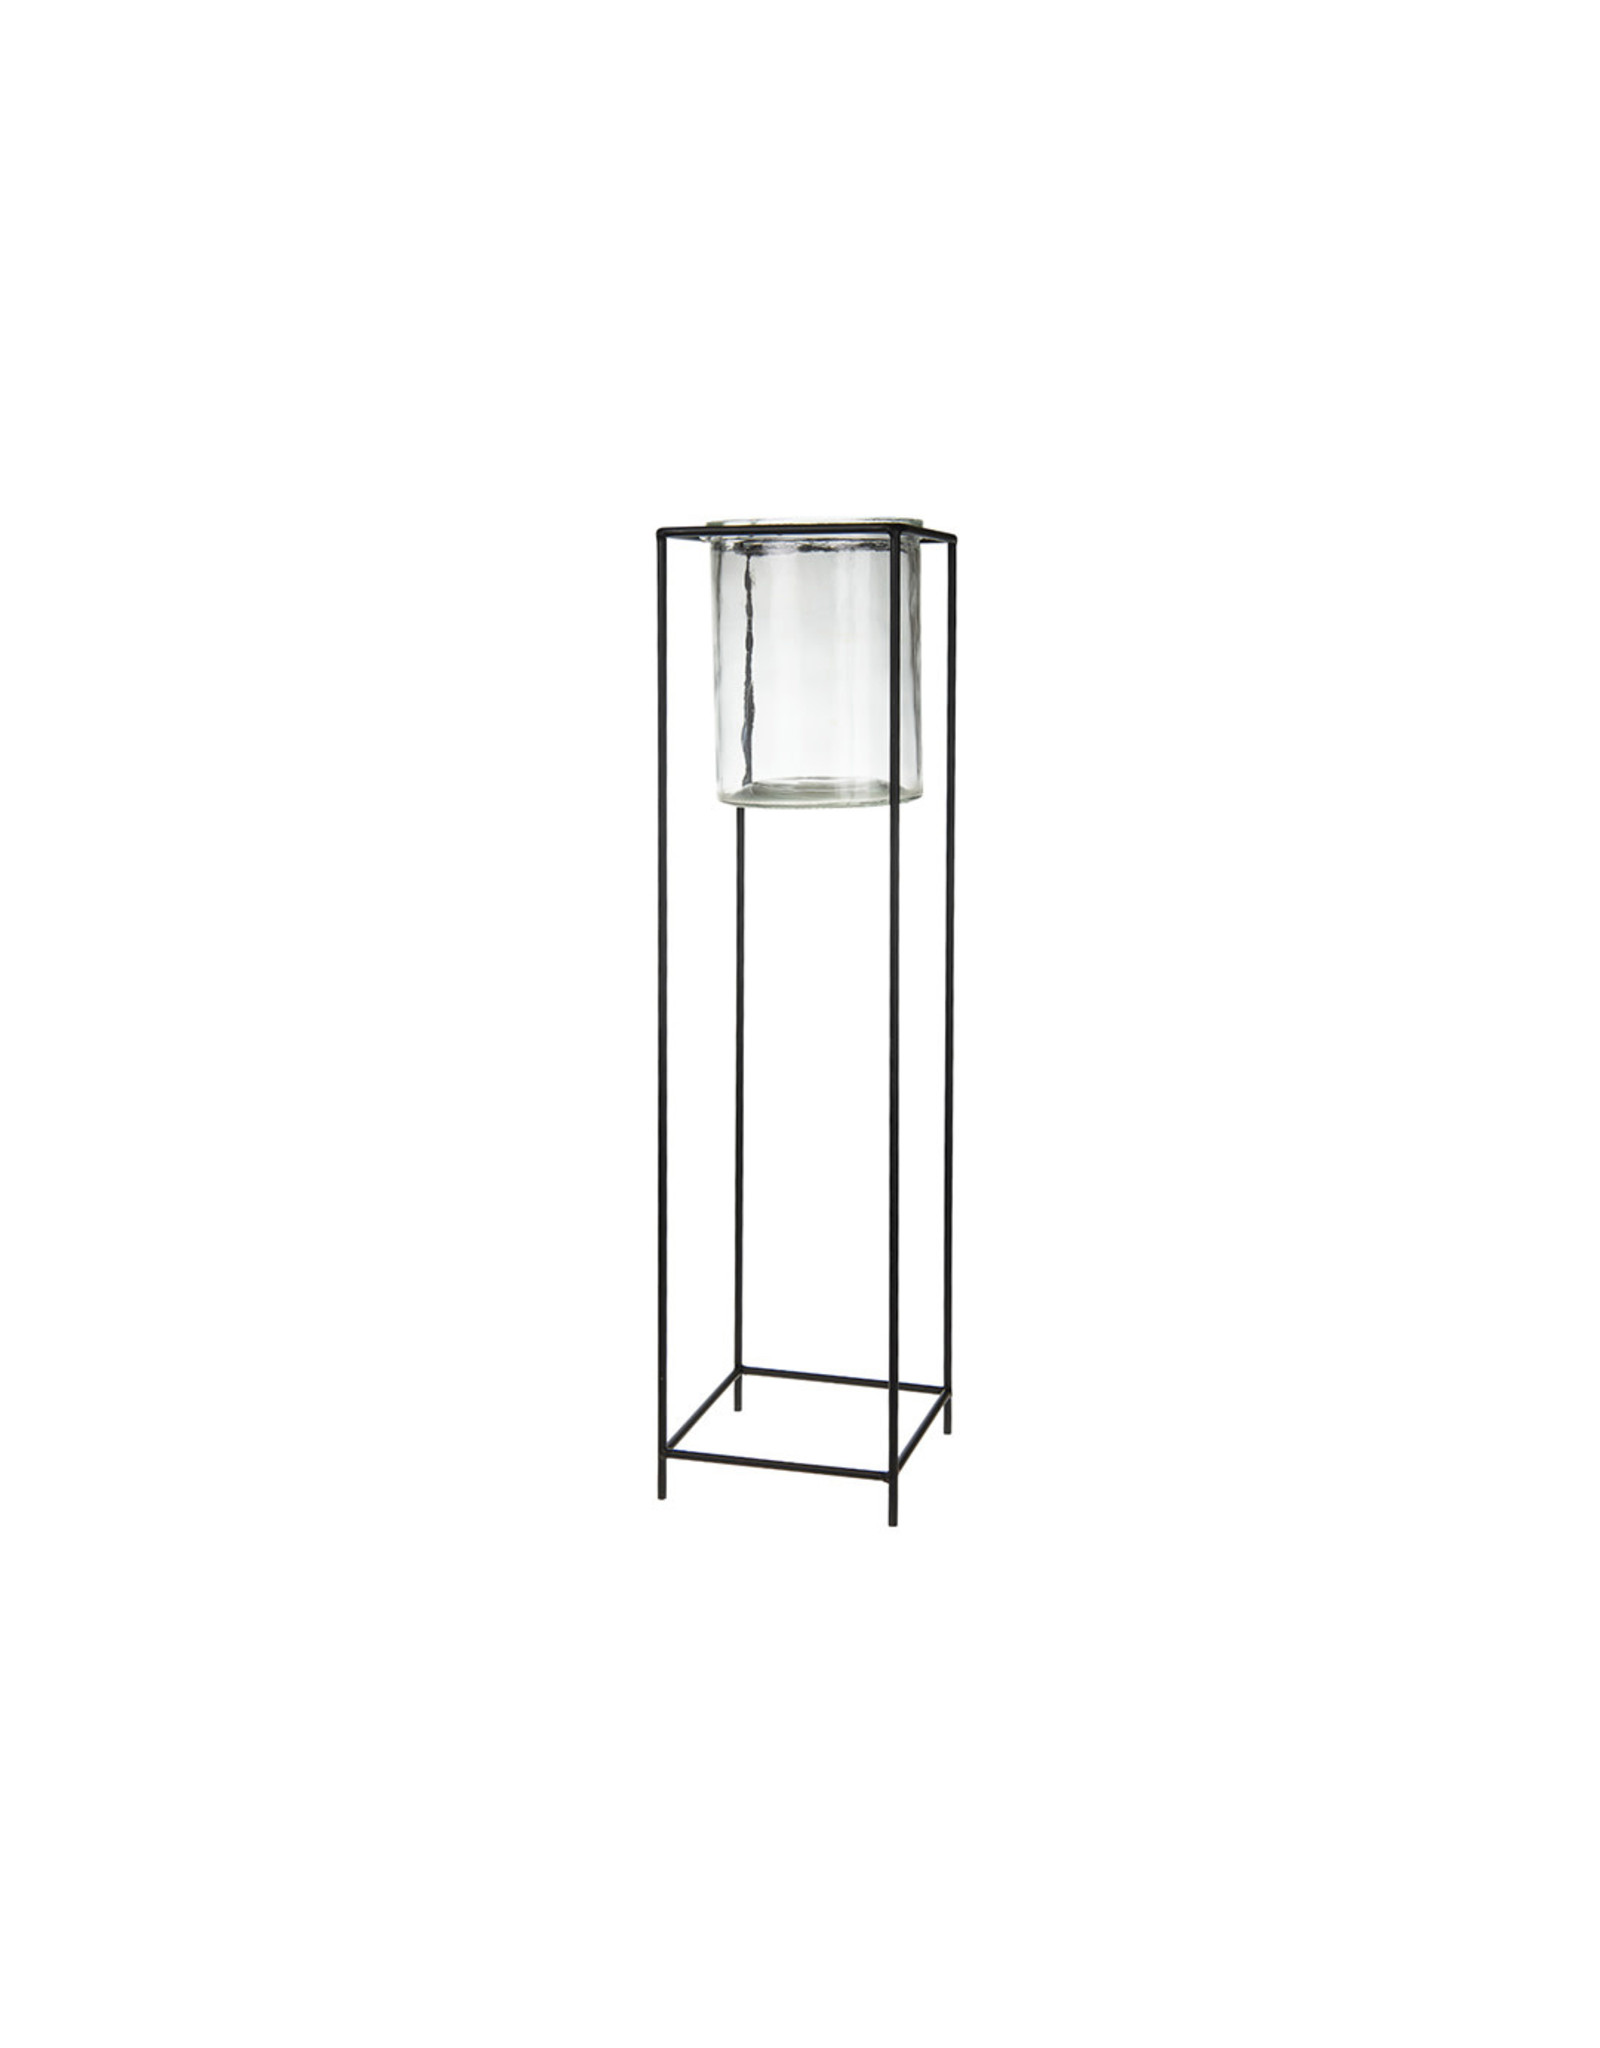 Dijk Candle holder glass/metal black16x16x61cm